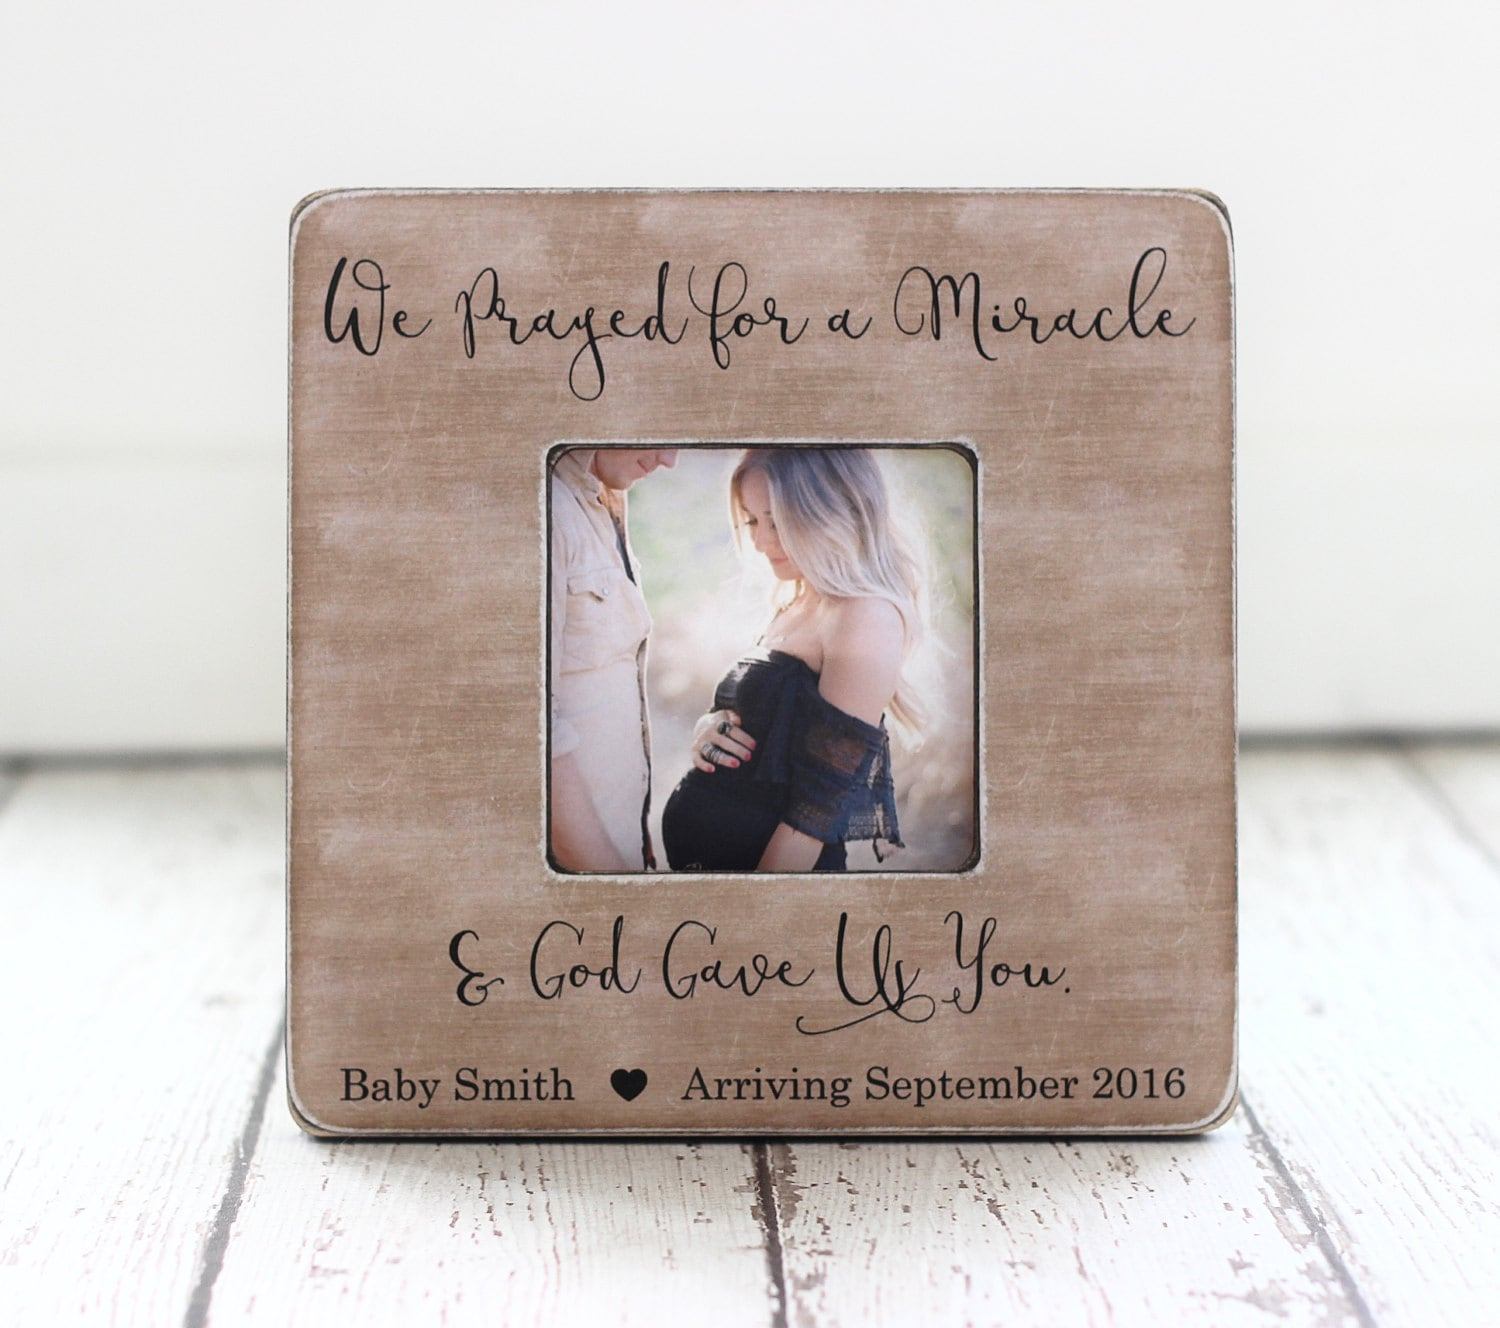 Pregnancy ultrasound picture frame gift for wife daughter description mothers day pregnancy ultrasound picture frame gift for jeuxipadfo Choice Image